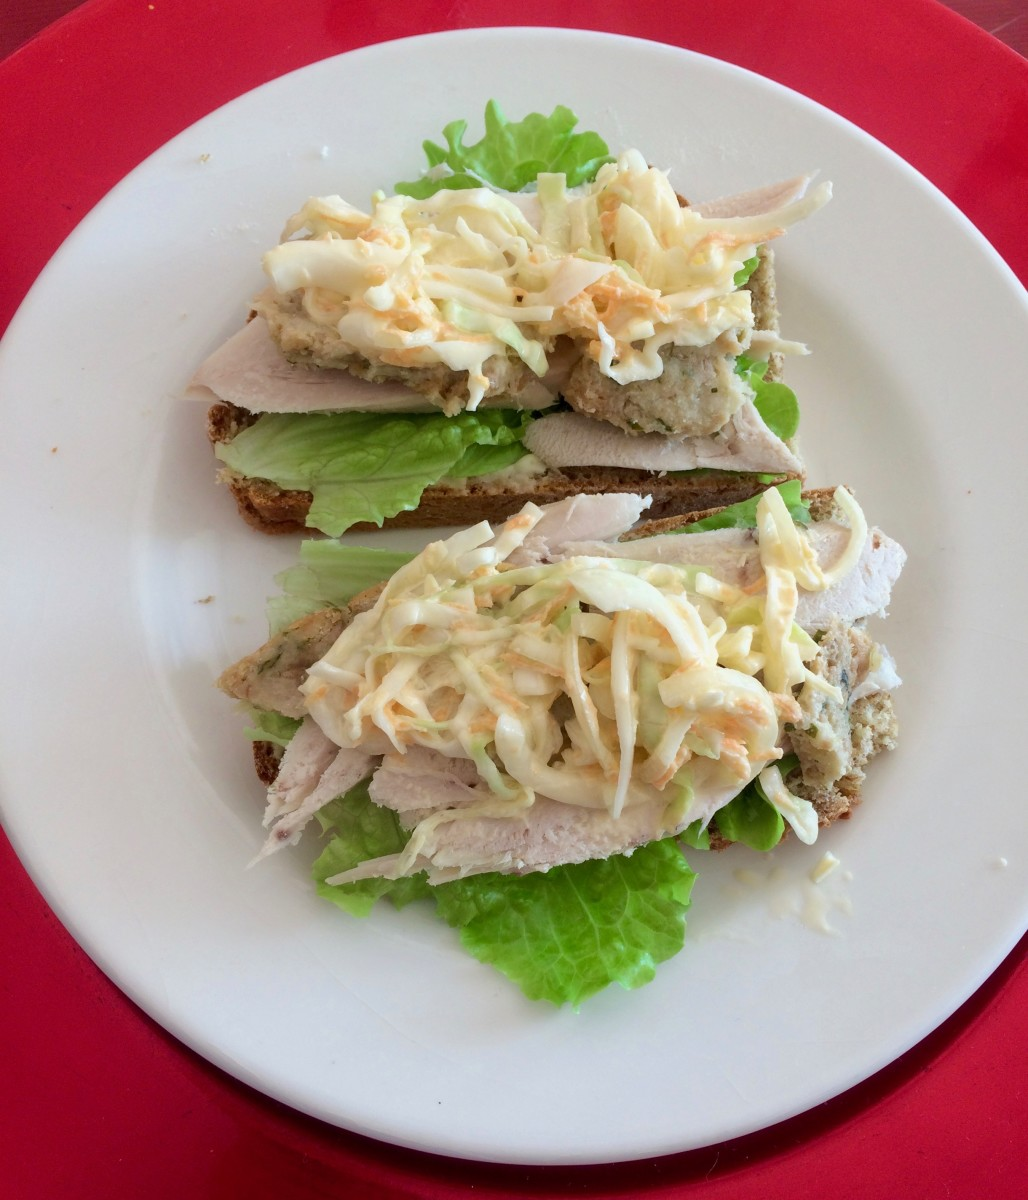 Turkey and Coleslaw Open Sandwich